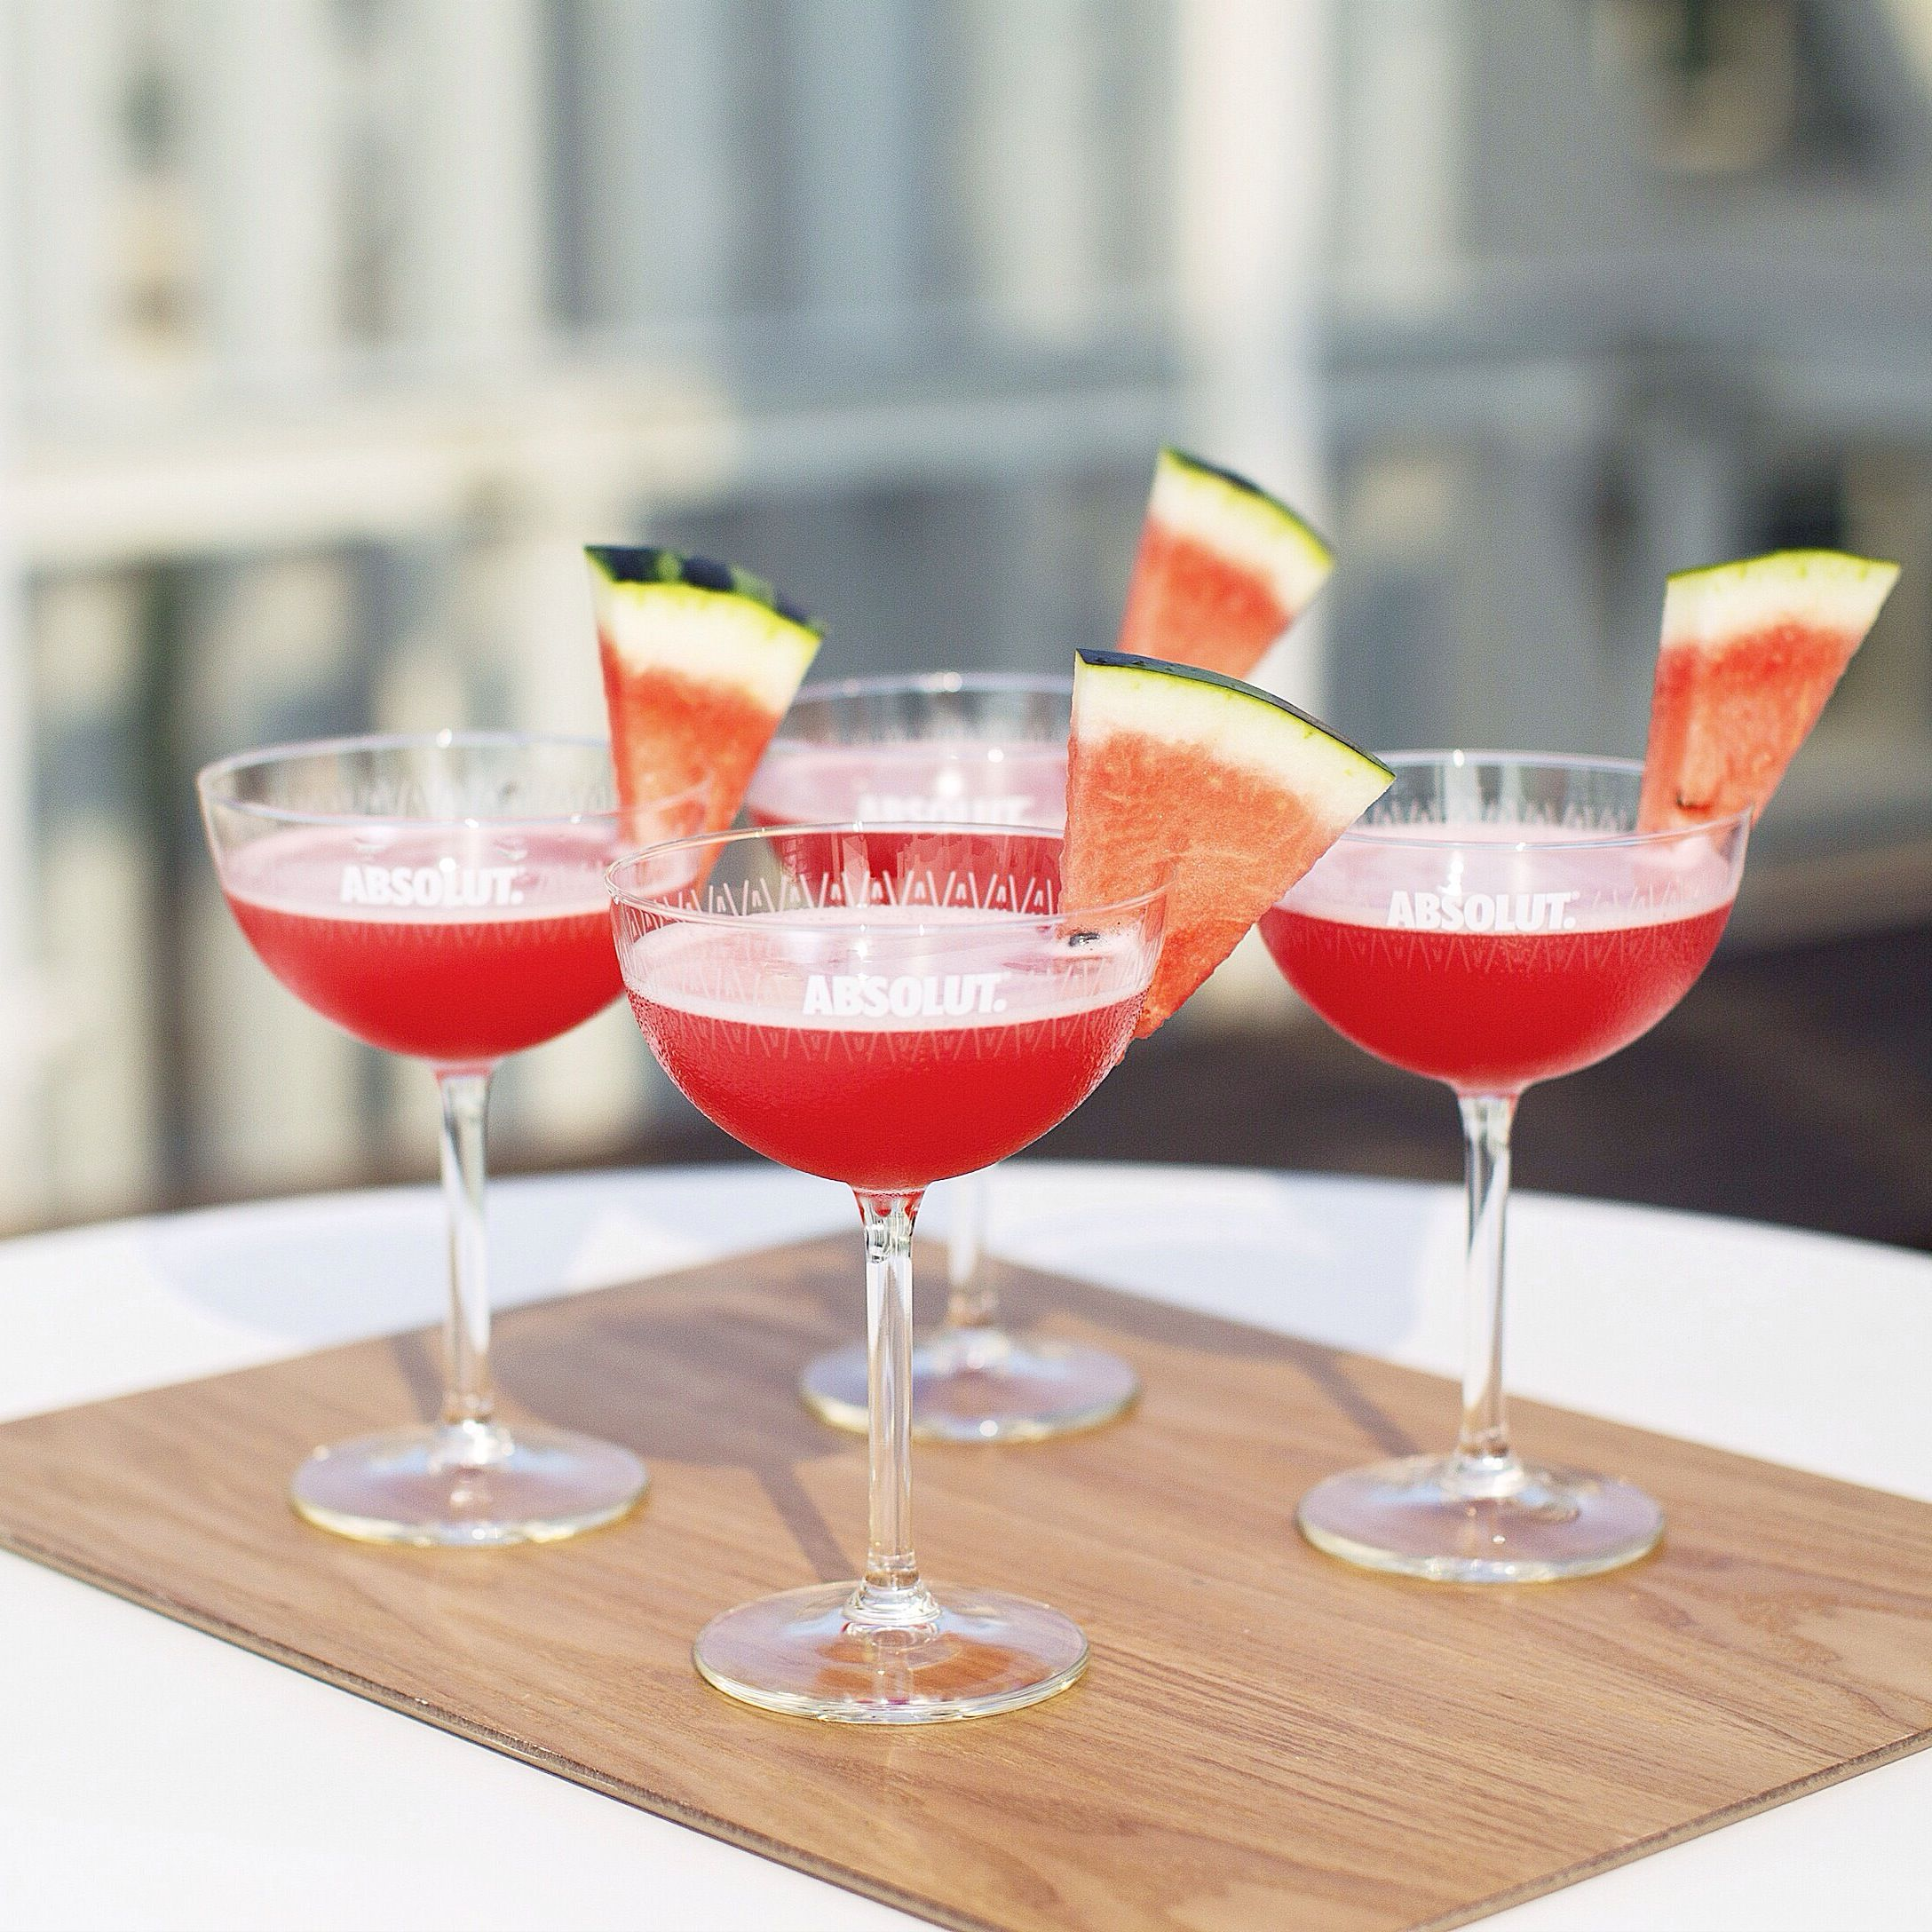 Cocktail Recipes. Absolut Watermelon Martini: 2 Parts